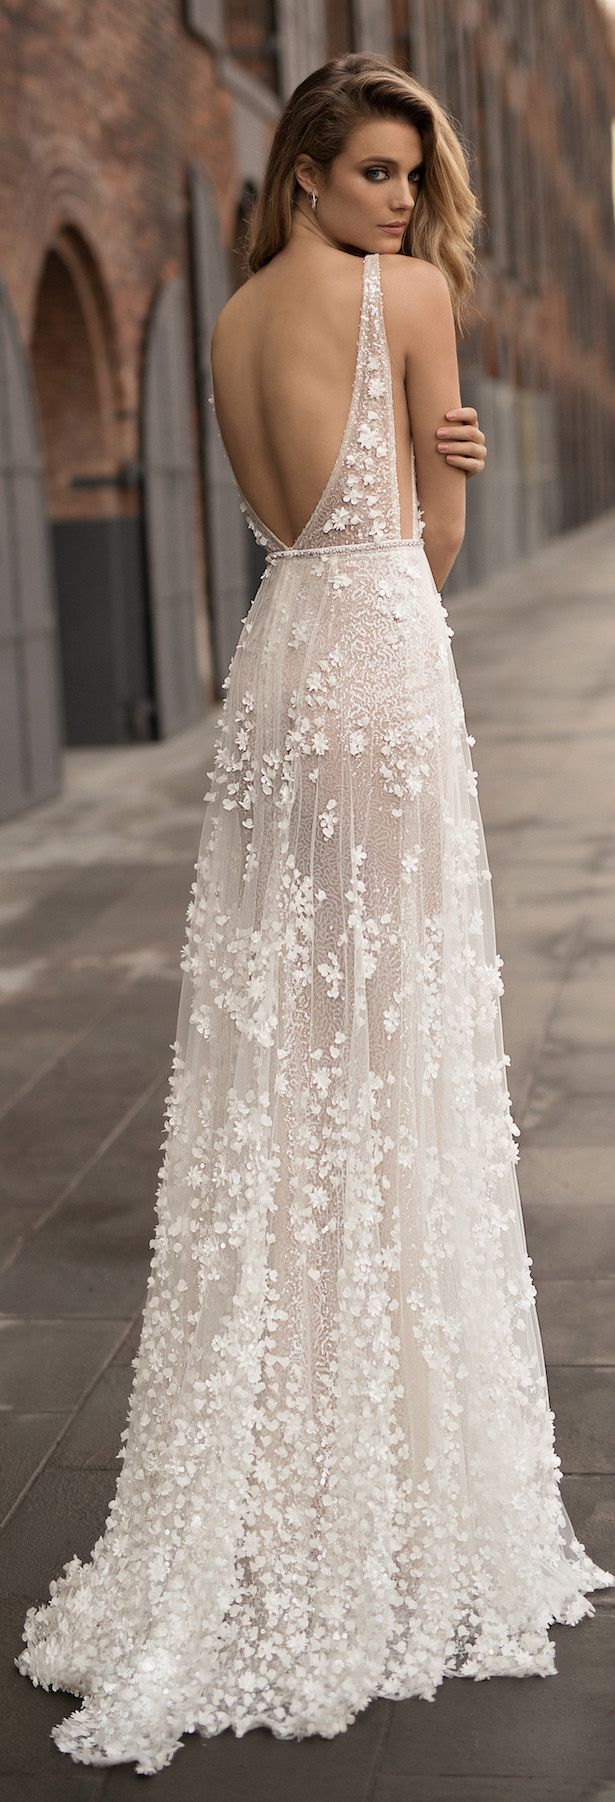 Berta wedding dress collection spring 2018 dress for Spring wedding dresses 2018